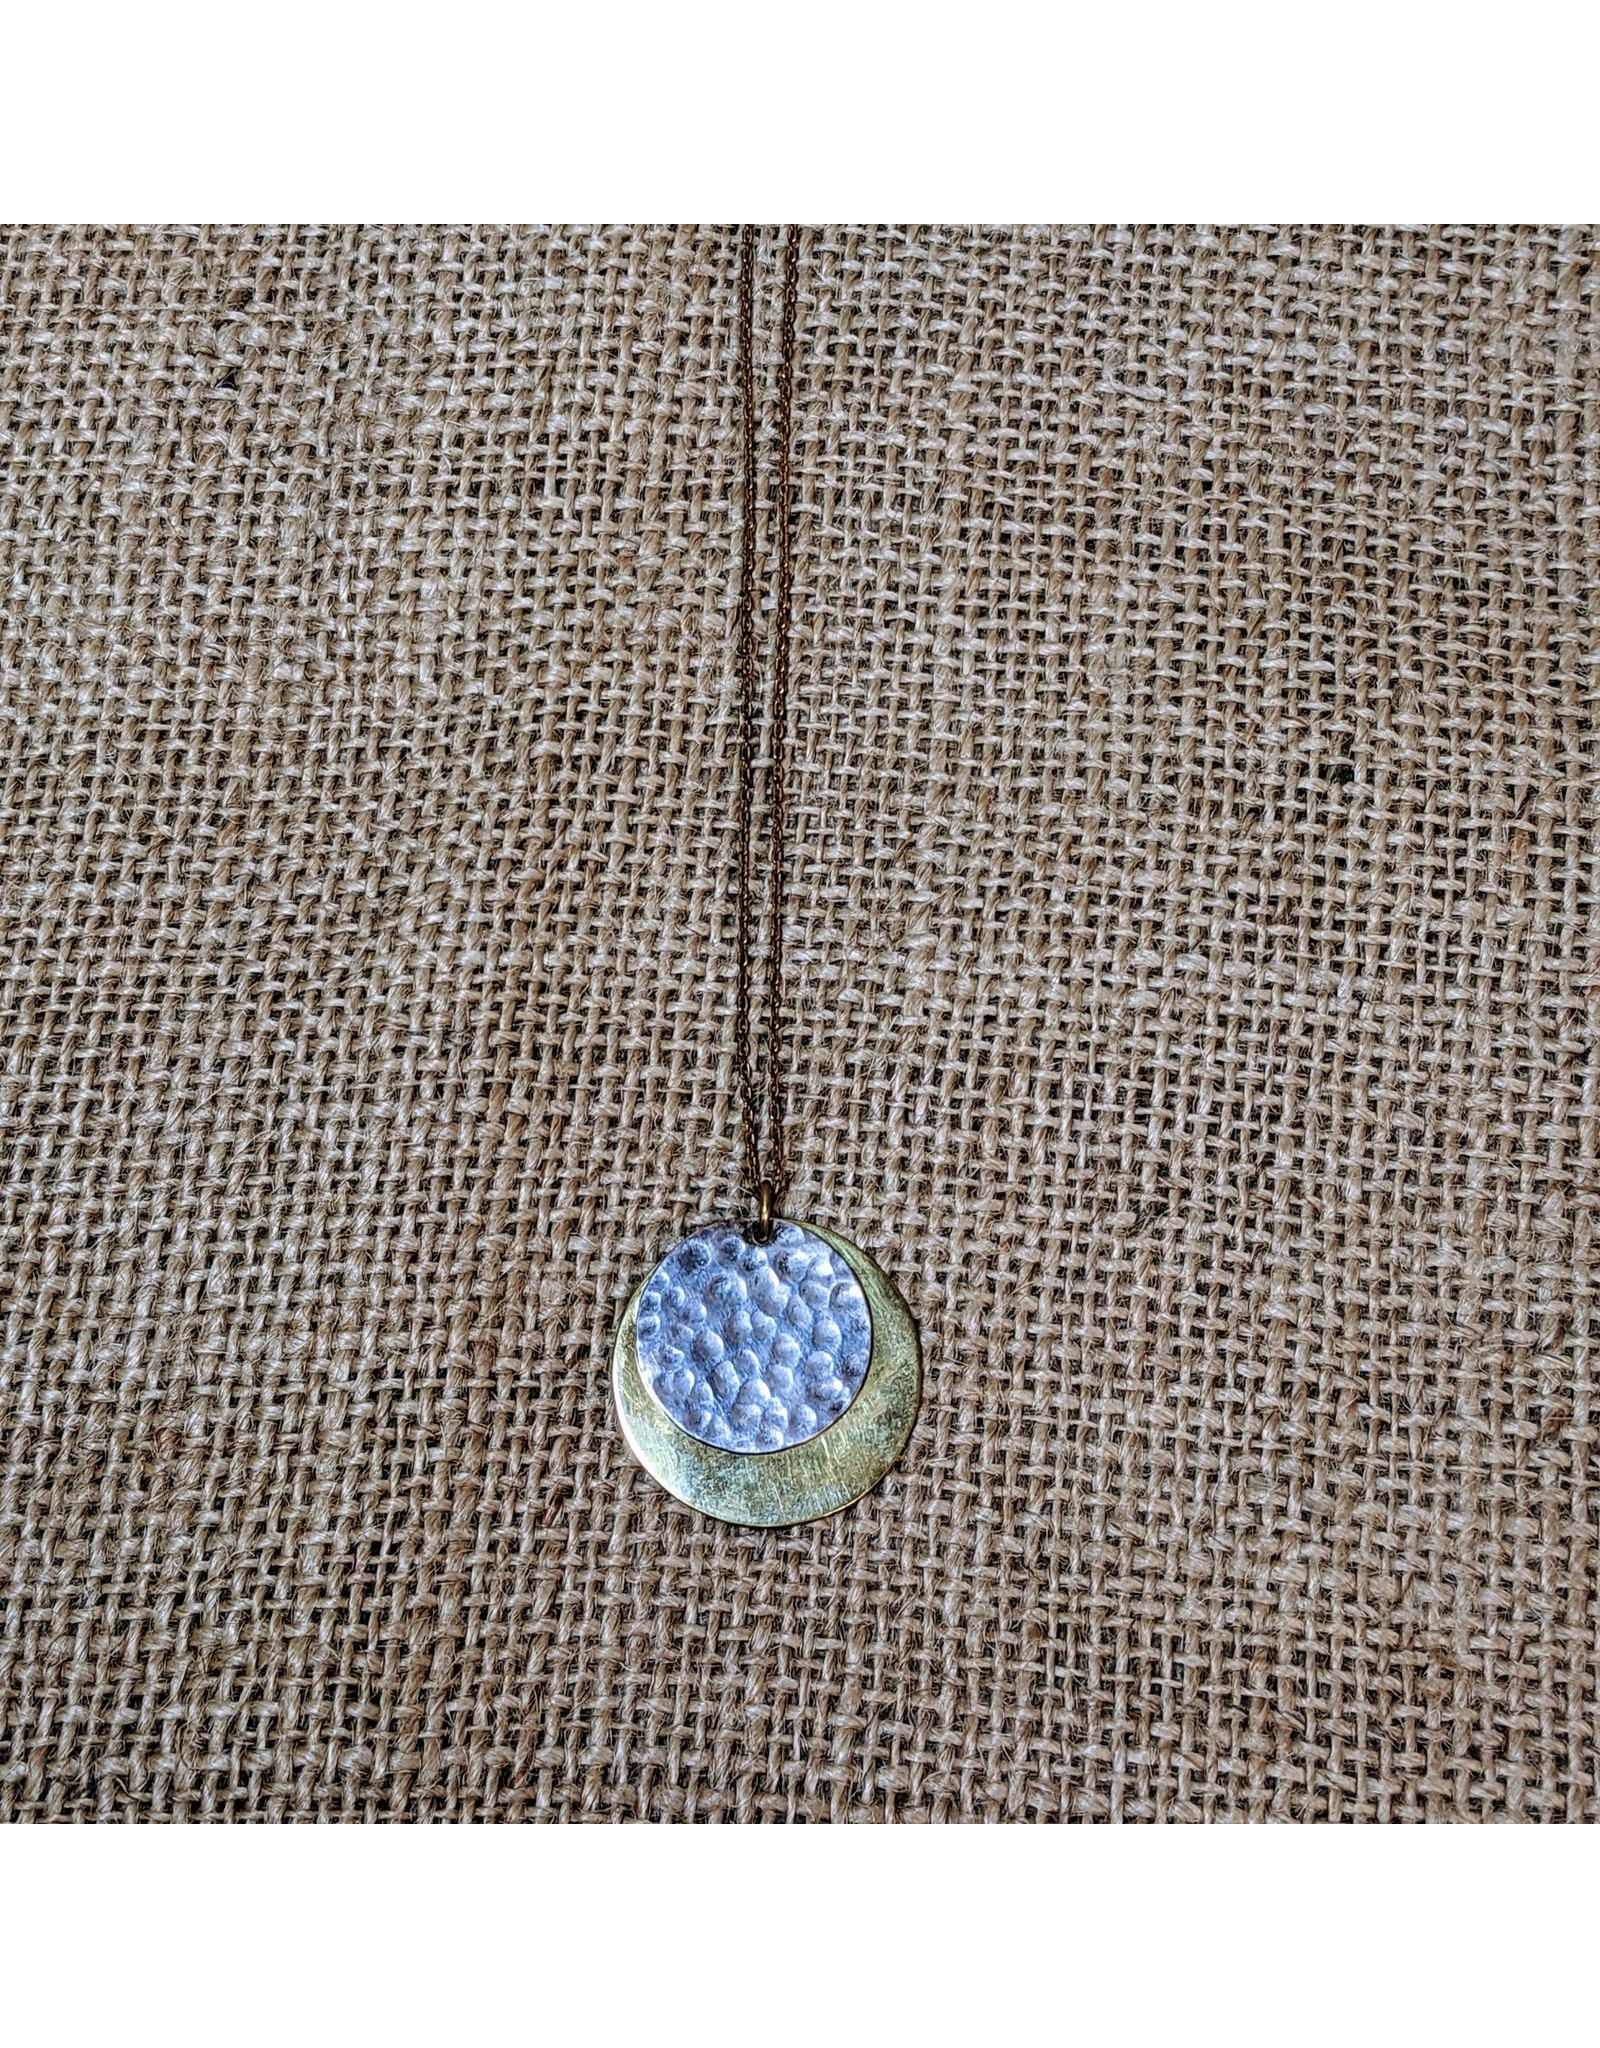 Ten Thousand Villages CLEARANCE Serious Coin Necklace, Cambodia